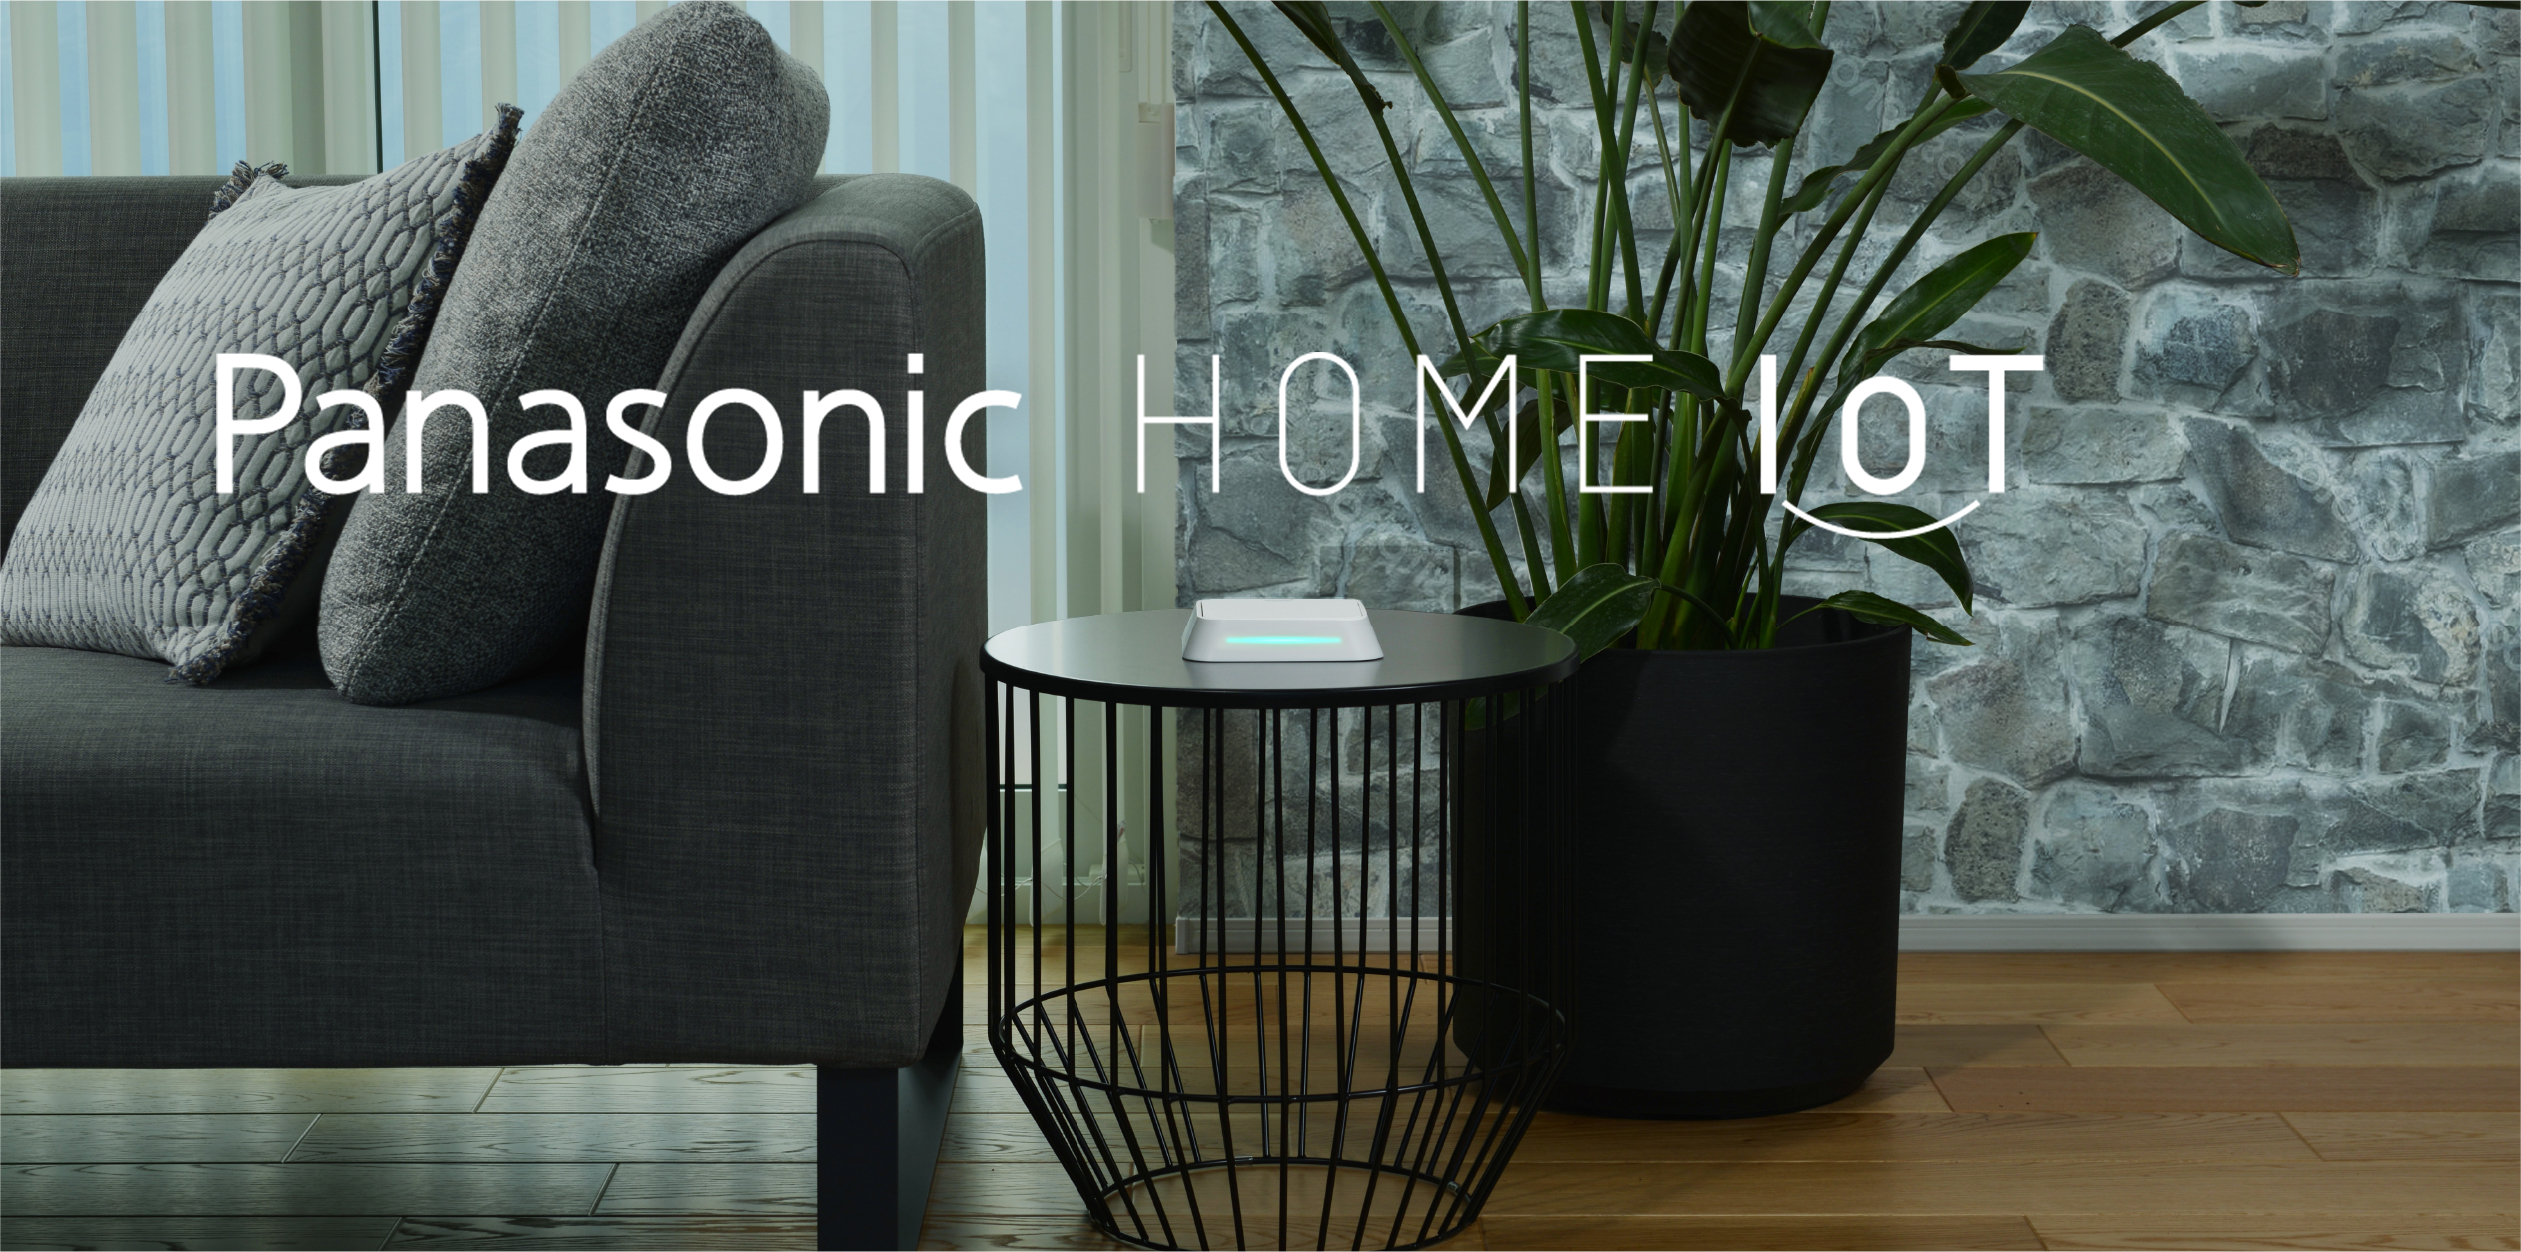 home-iot interior 01 logo